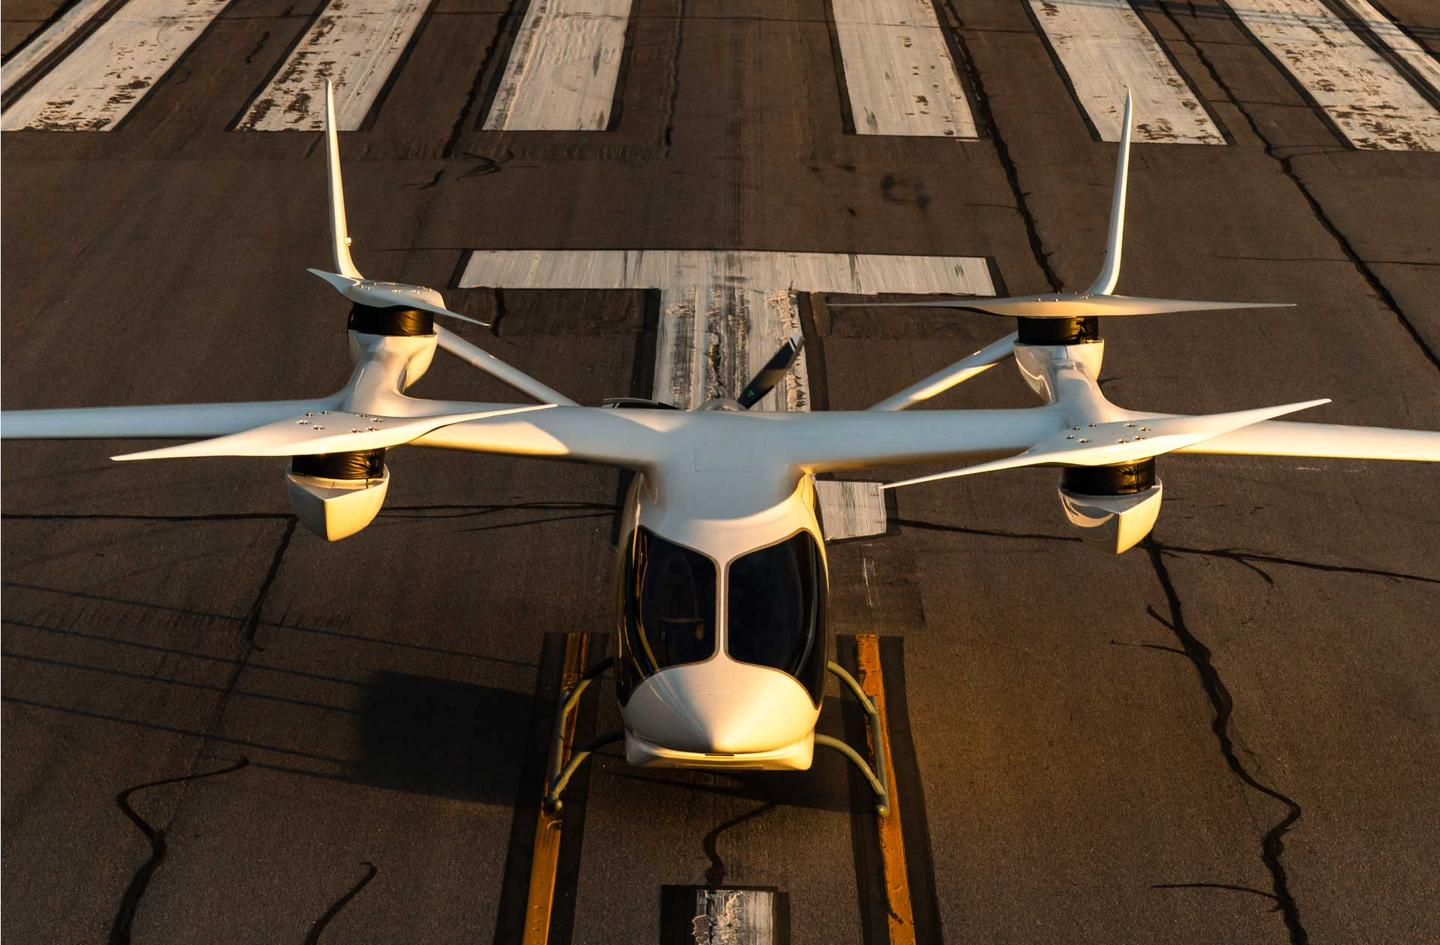 The Aria-250 will go into production in five-passenger air taxi and single-seat cargo versions